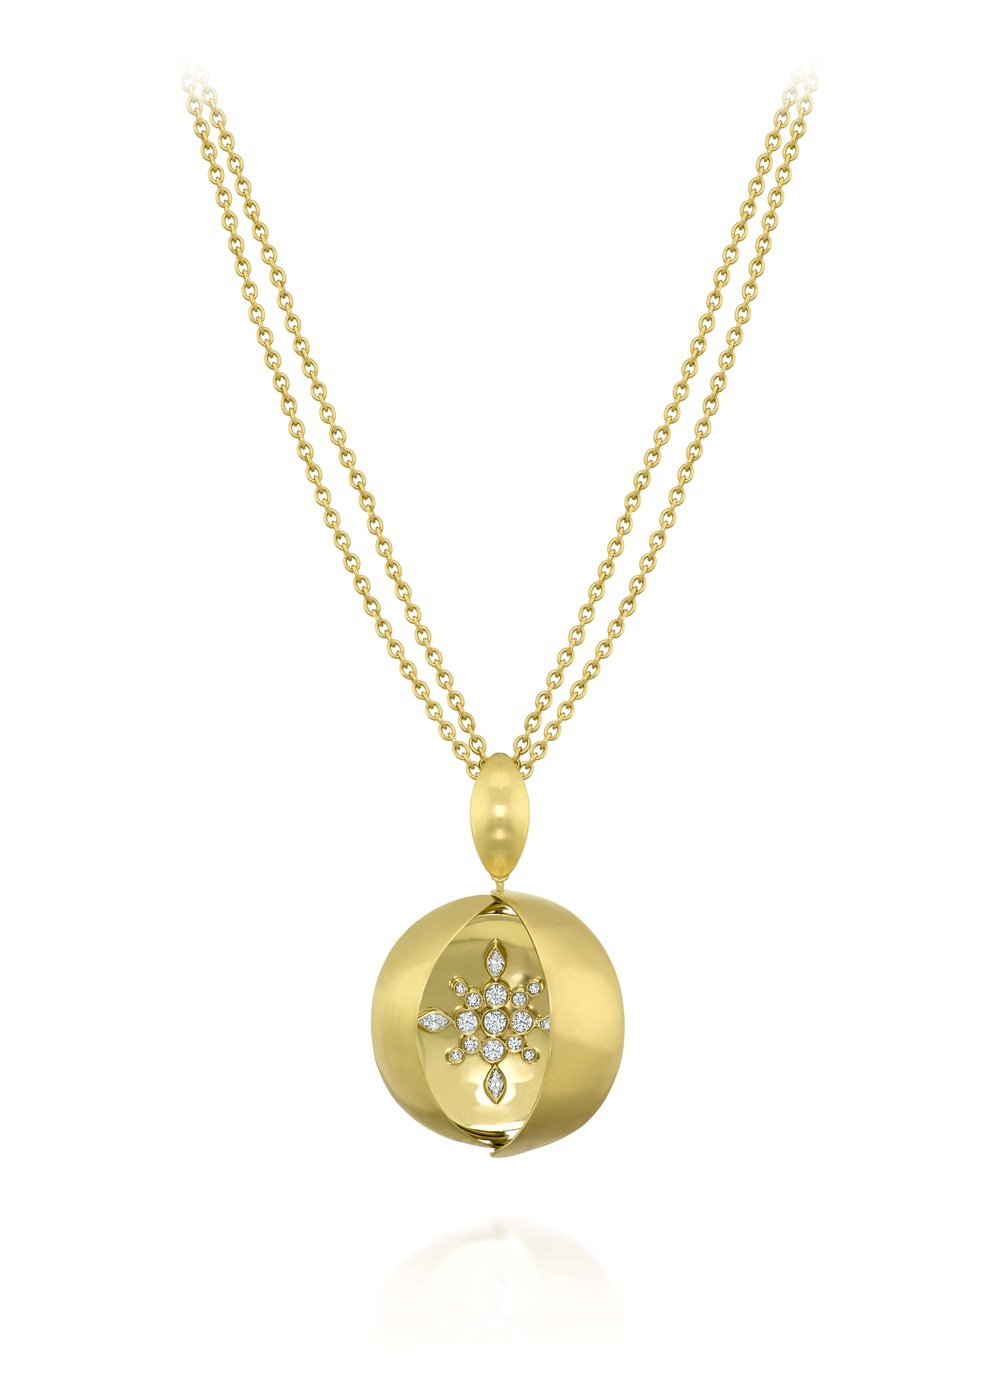 Rose Carvalho - Observatory Star pendant- 18k yellow gold and diamonds..jpg